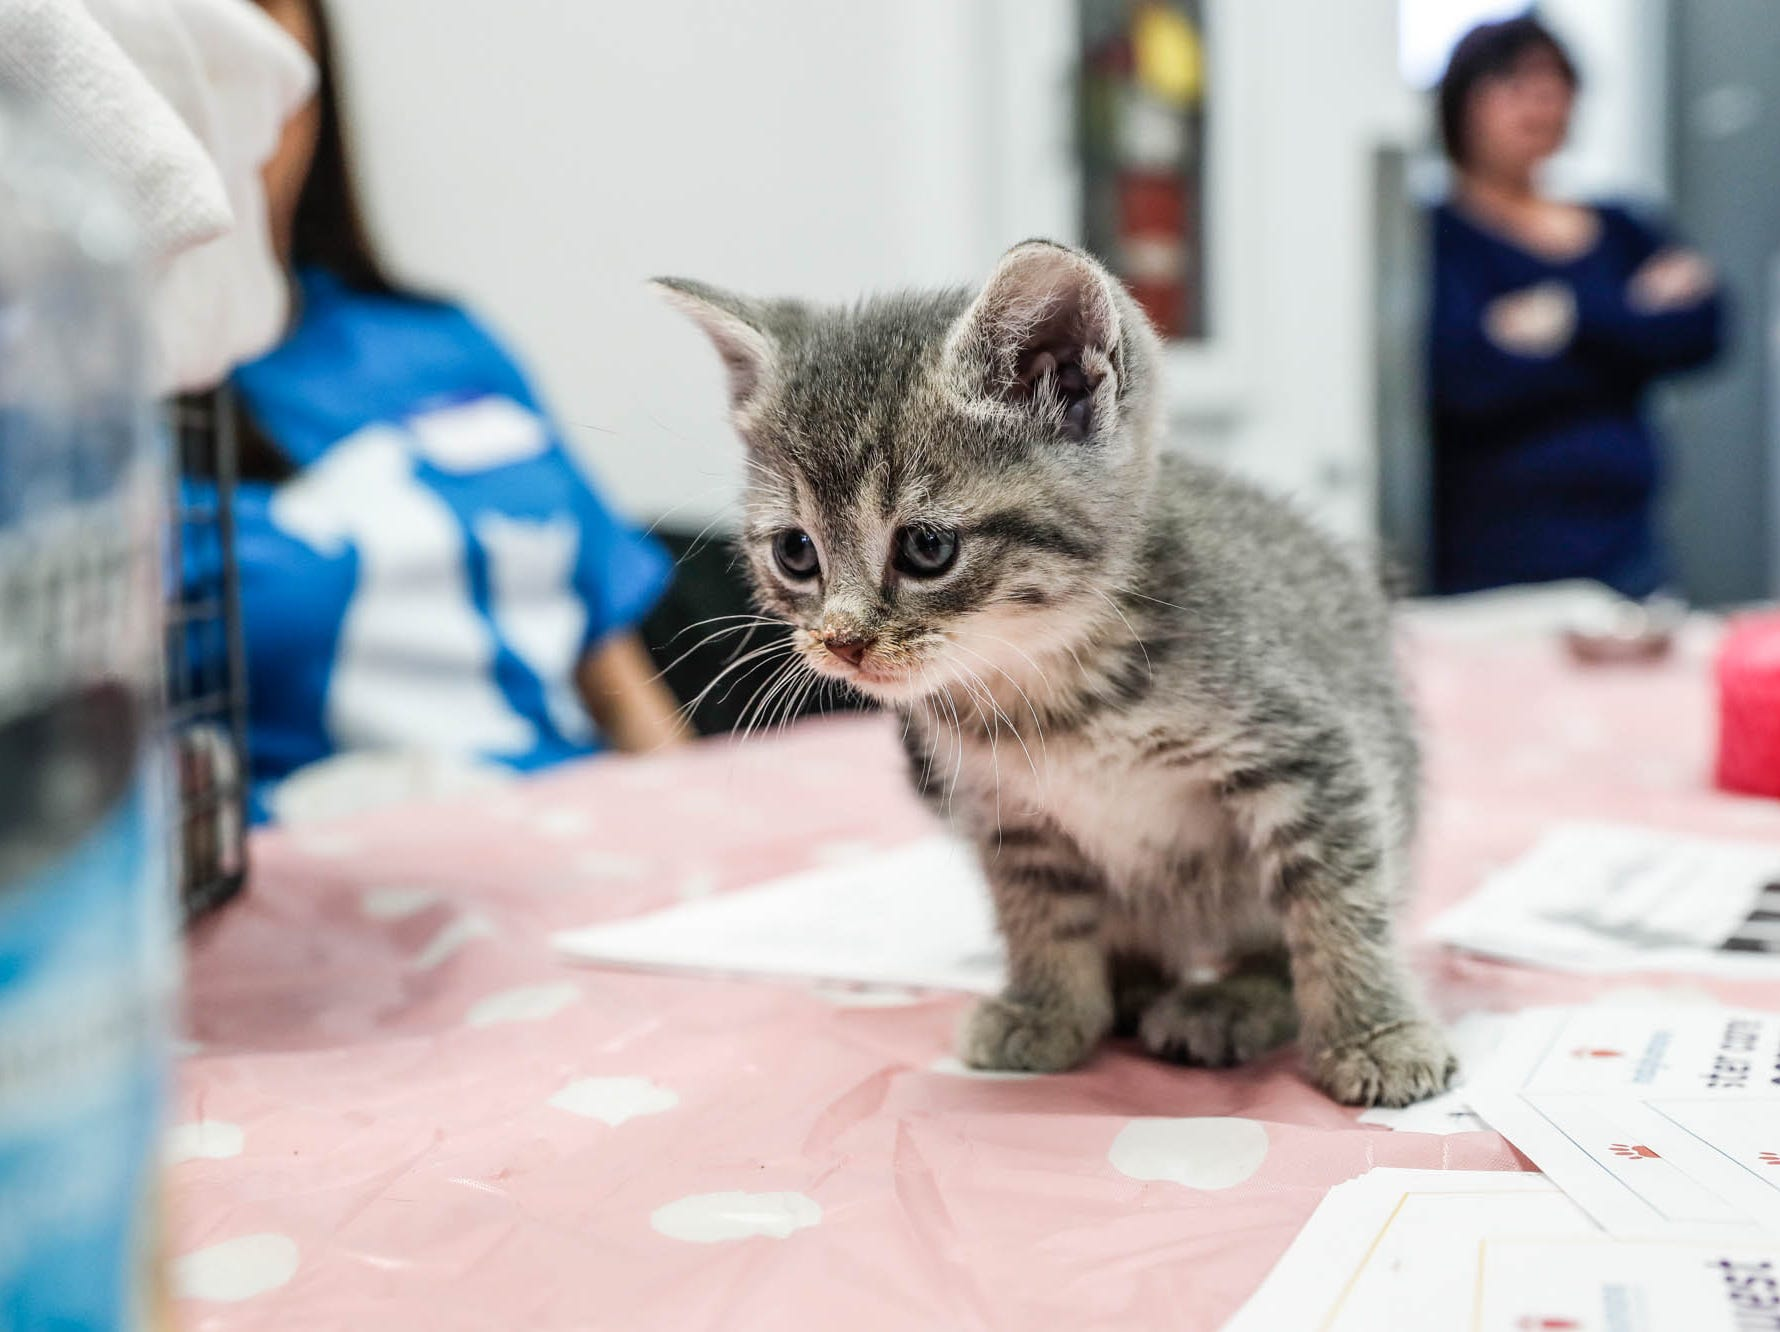 A kitten plays on a table with volunteers during the Puppy and Kitten Baby Shower, held at Indy Humane on Sunday, March 10, 2019. The event educates families on Indy Humane's foster care program, as Fosters are needed in the spring during puppy and kitten season.